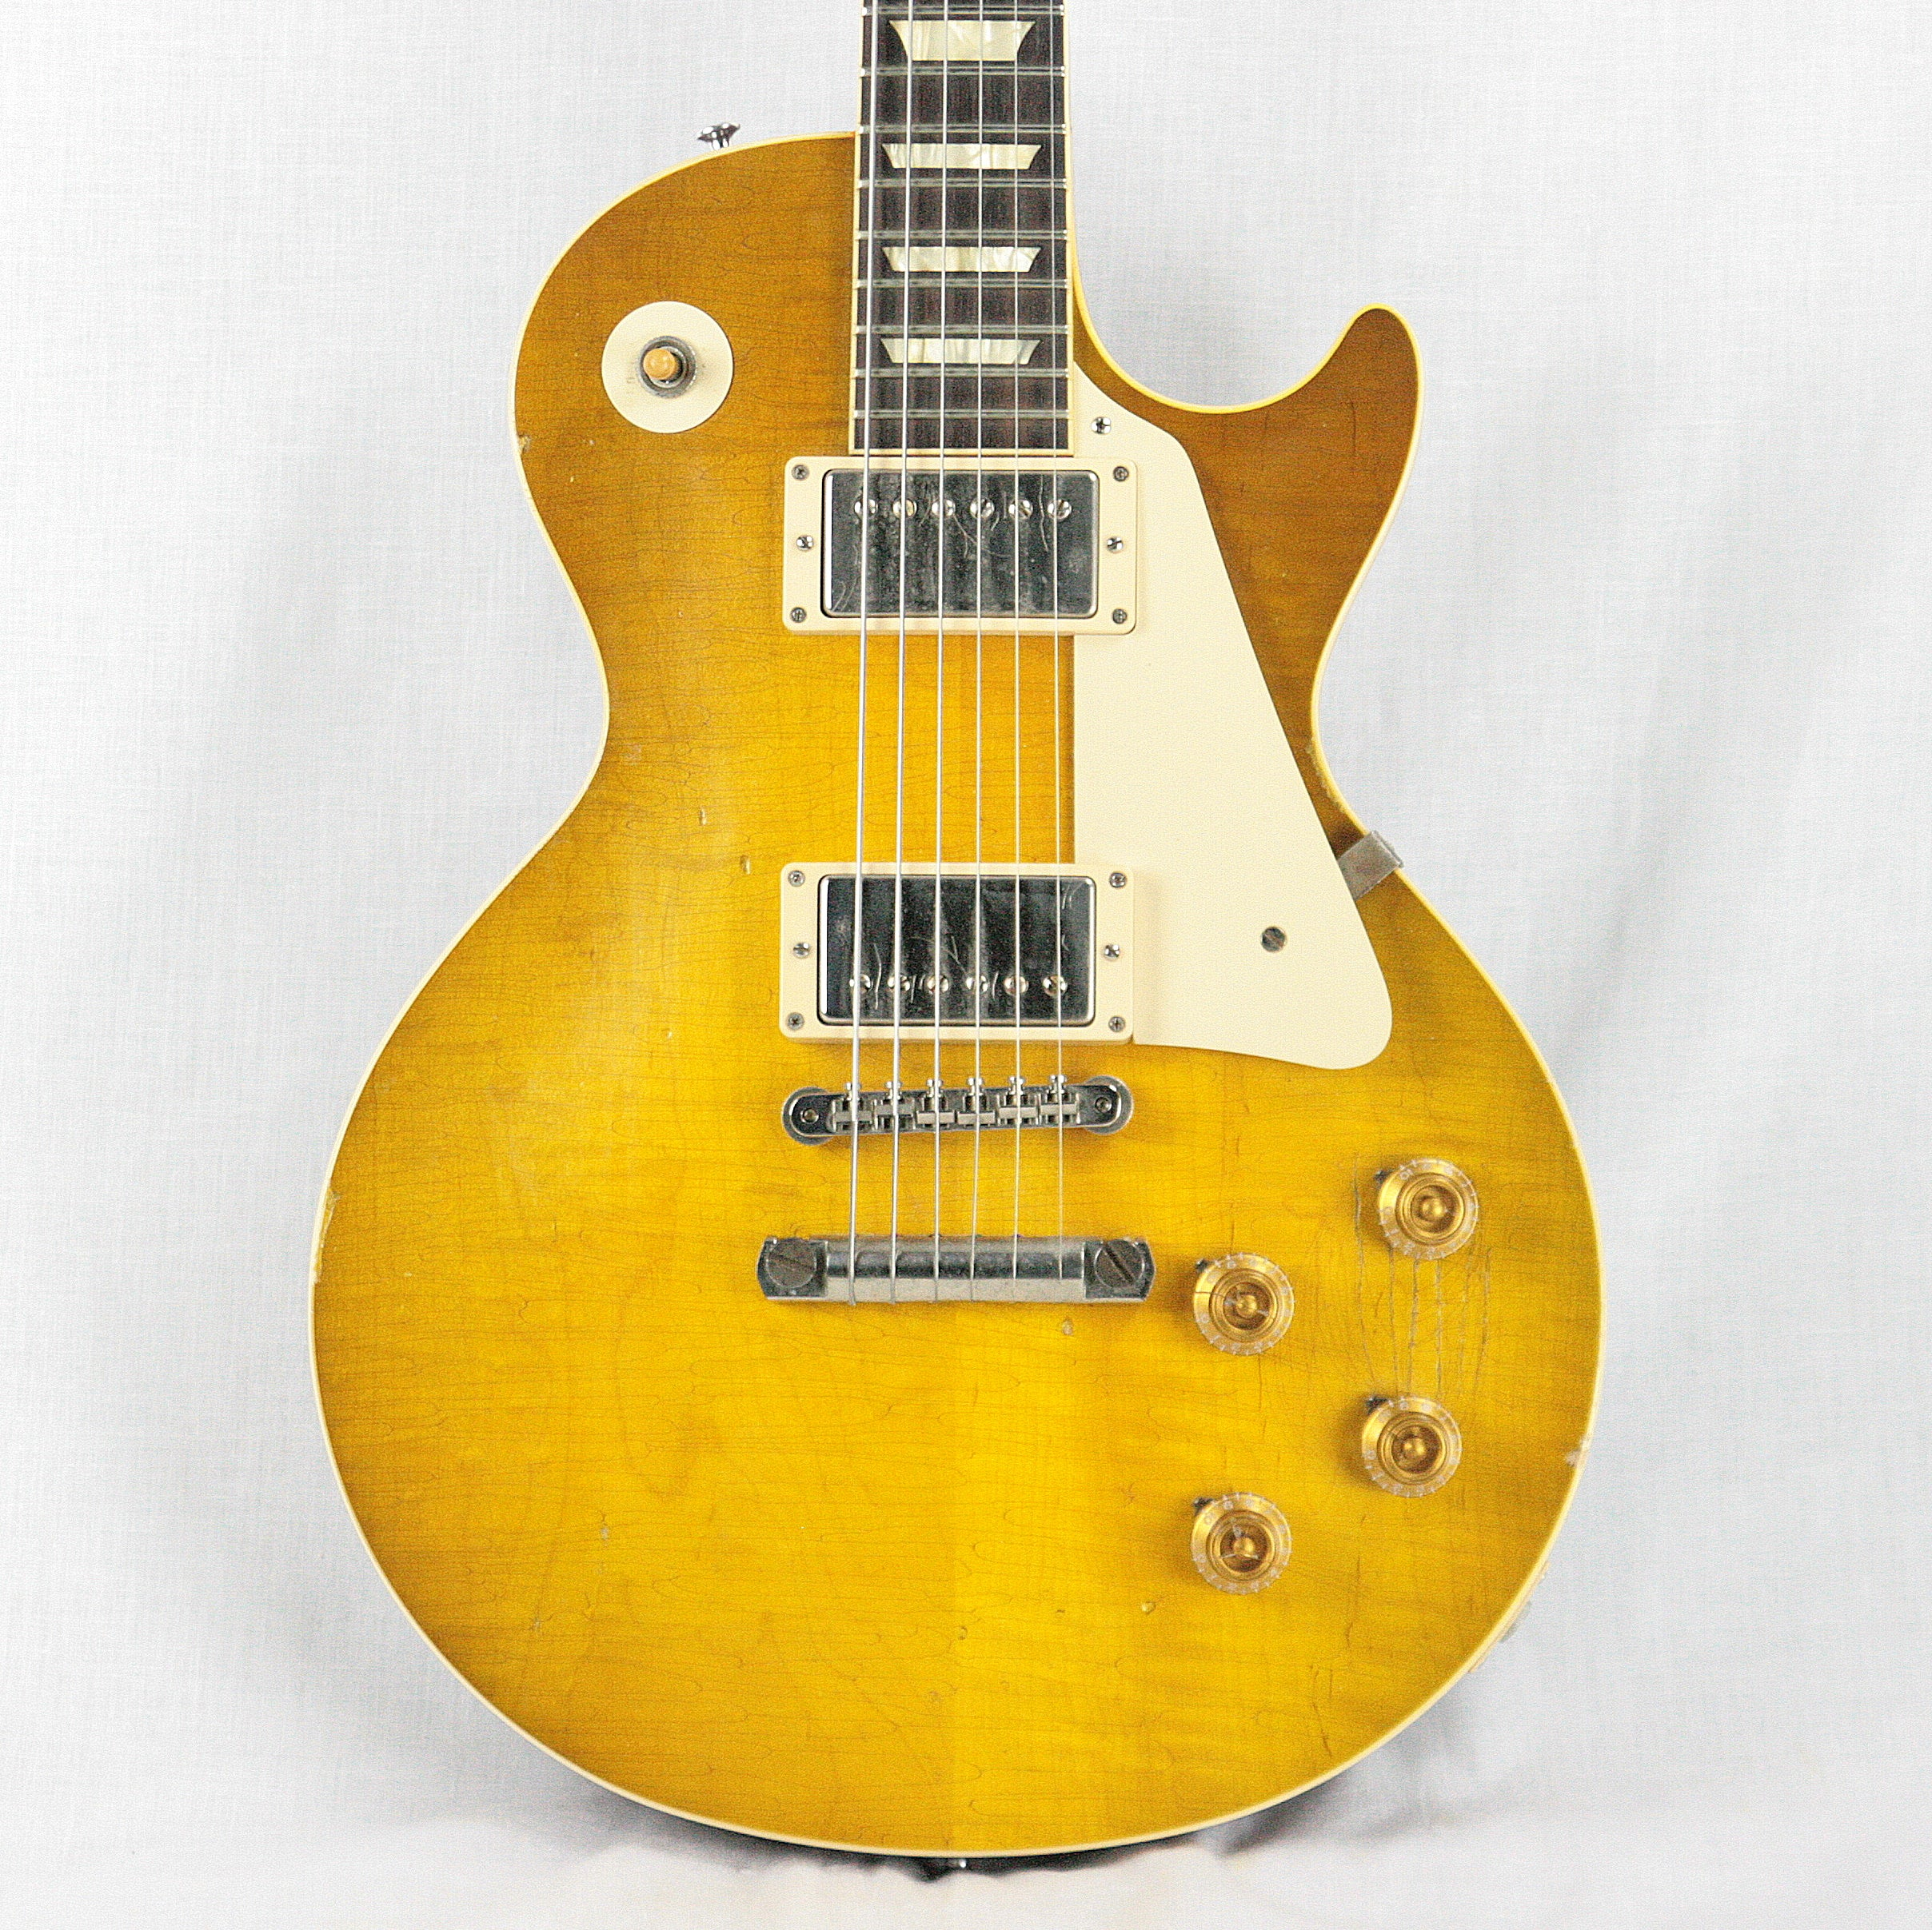 1959 Gibson Les Paul Collector's Choice CC#13 Spoonful Burst Murphy Aged R9 59 Reissue